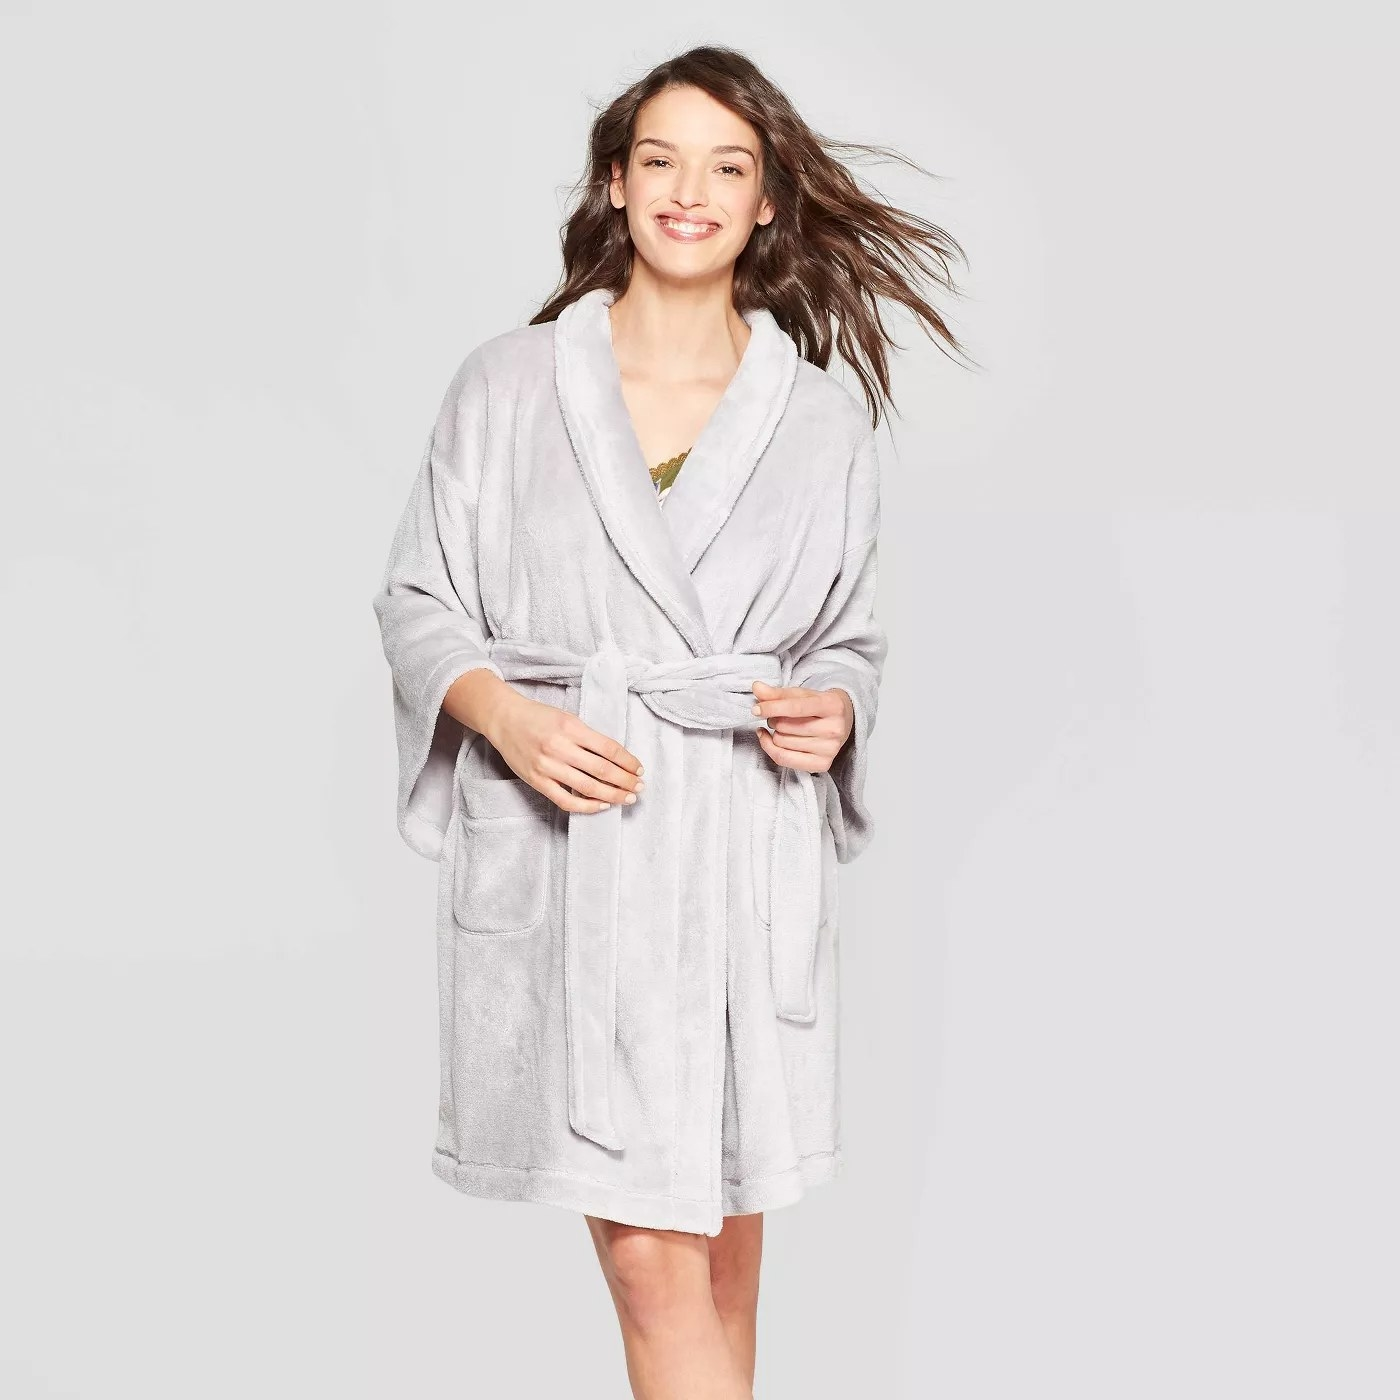 A model wearing the plush gray bathrobe with a sash